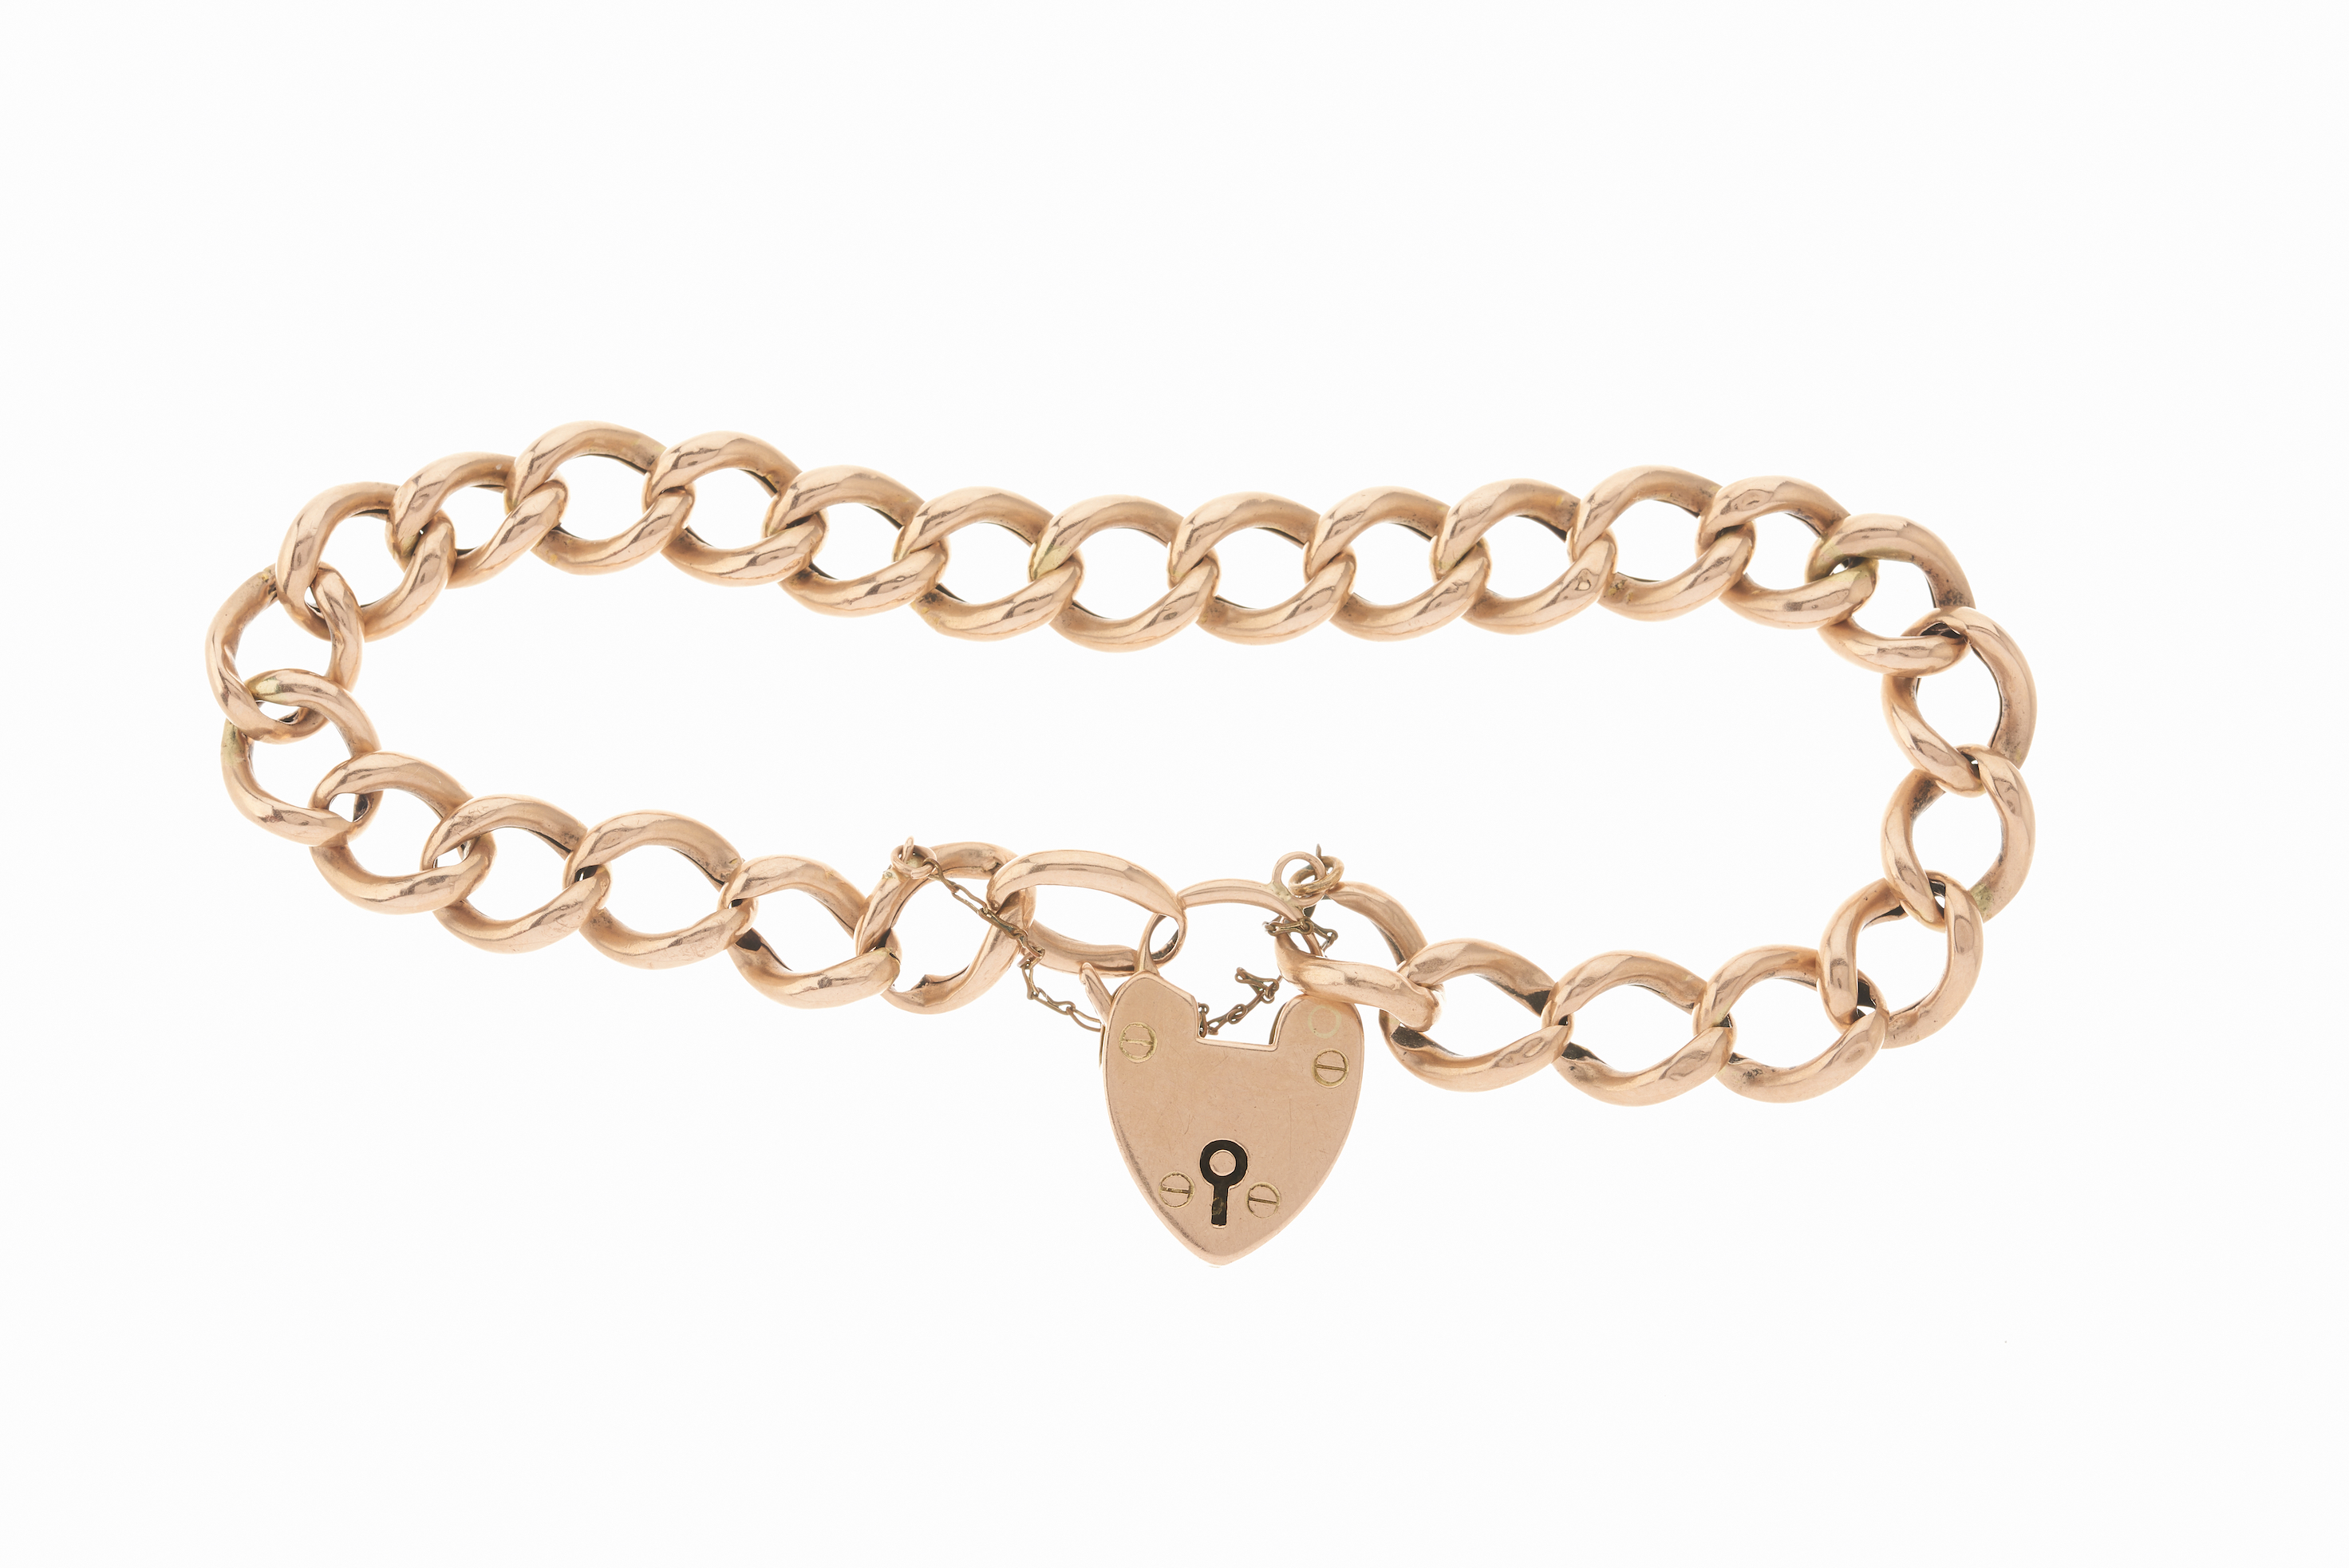 An early 20th century 9ct gold curb-link bracelet, - Image 2 of 2